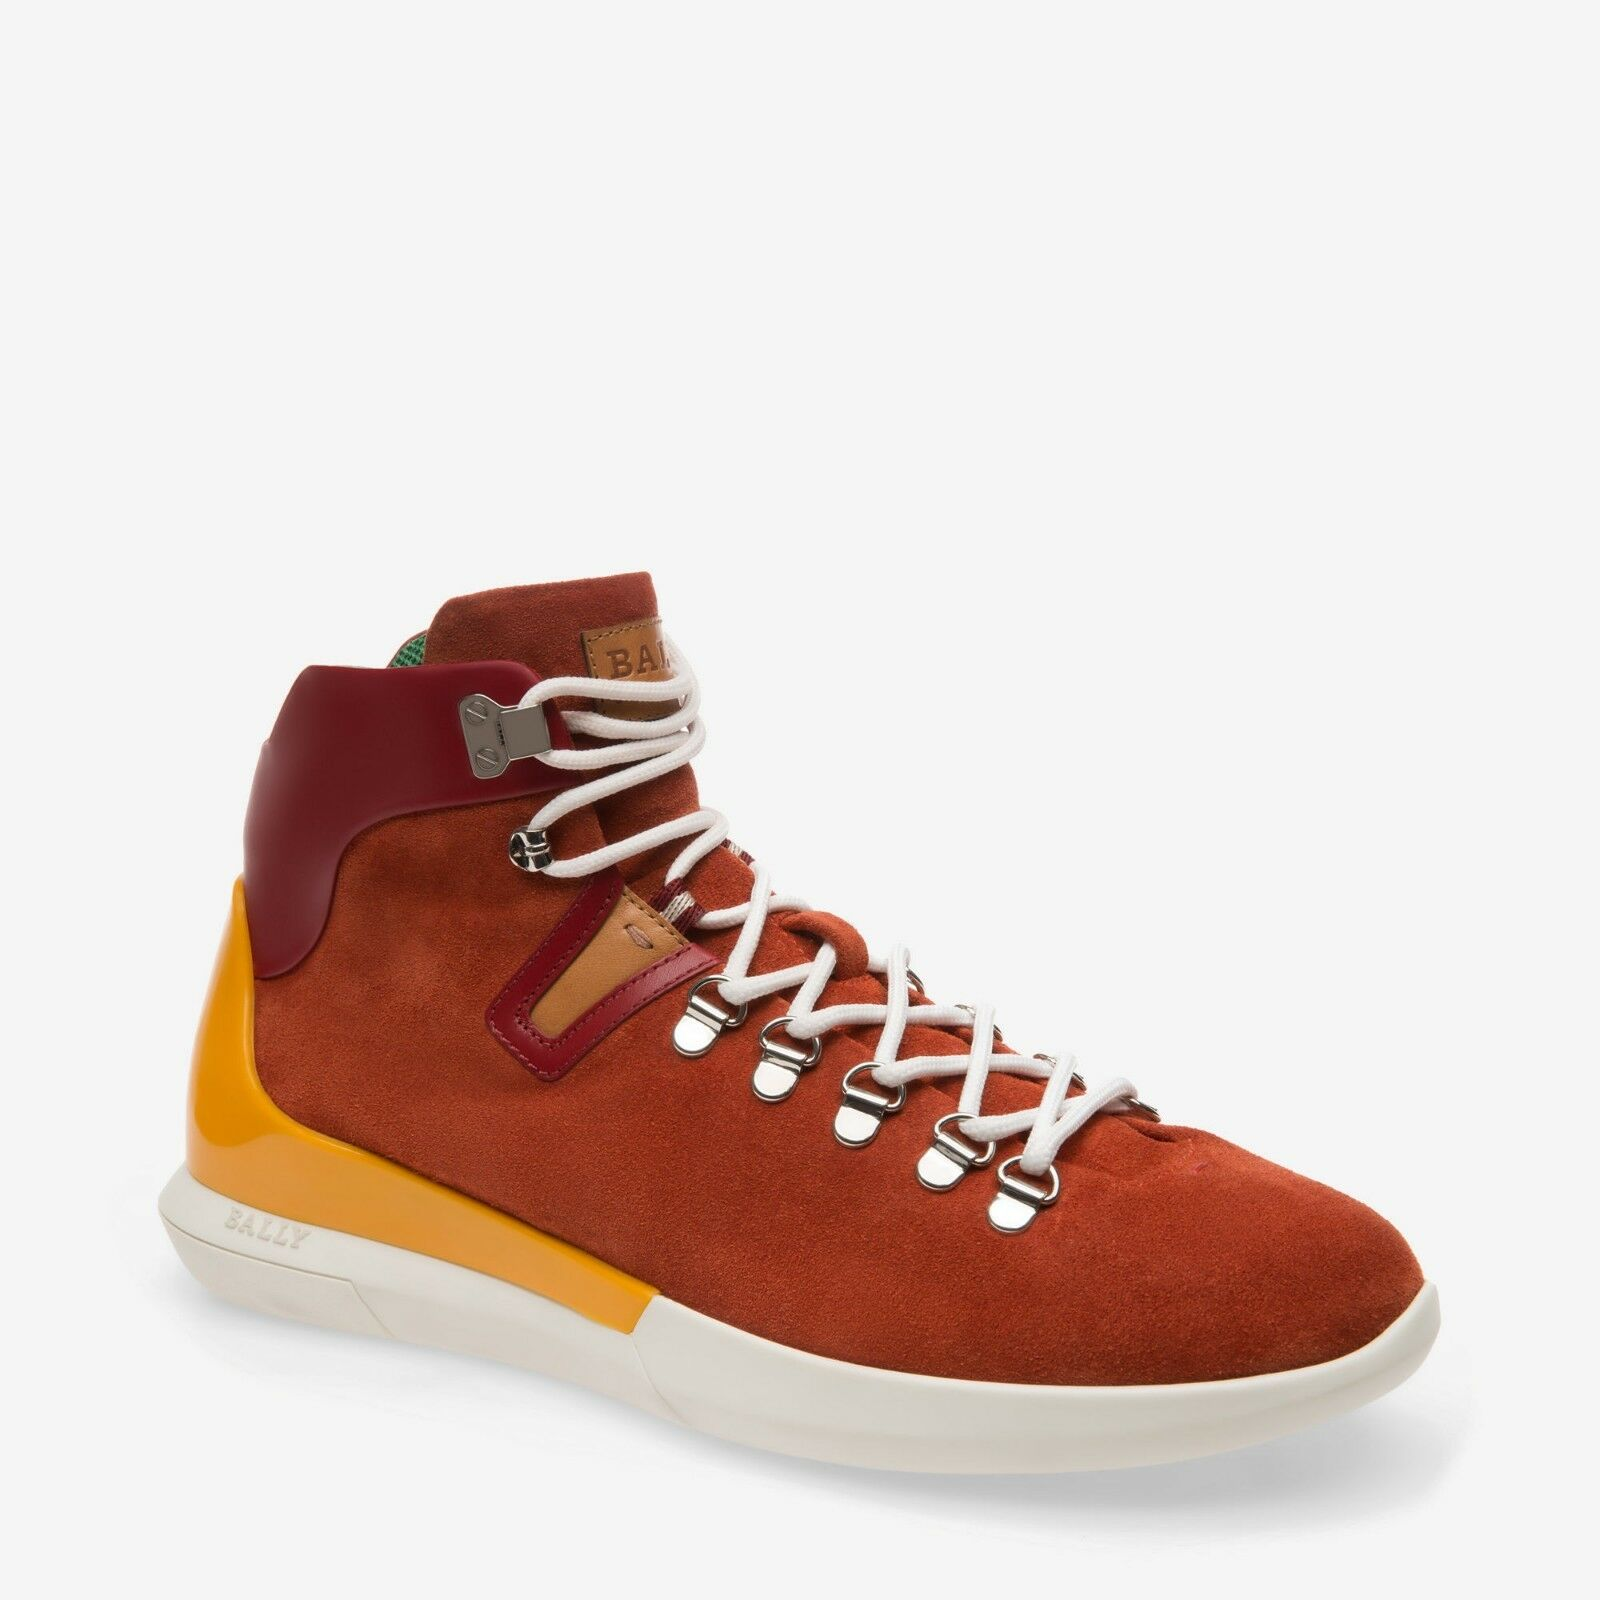 NIB BALLY AVYD SIENNA SUEDE RED LEATHER LOGO TOP SNEAKERS 7.5 US 40.5 ITALY